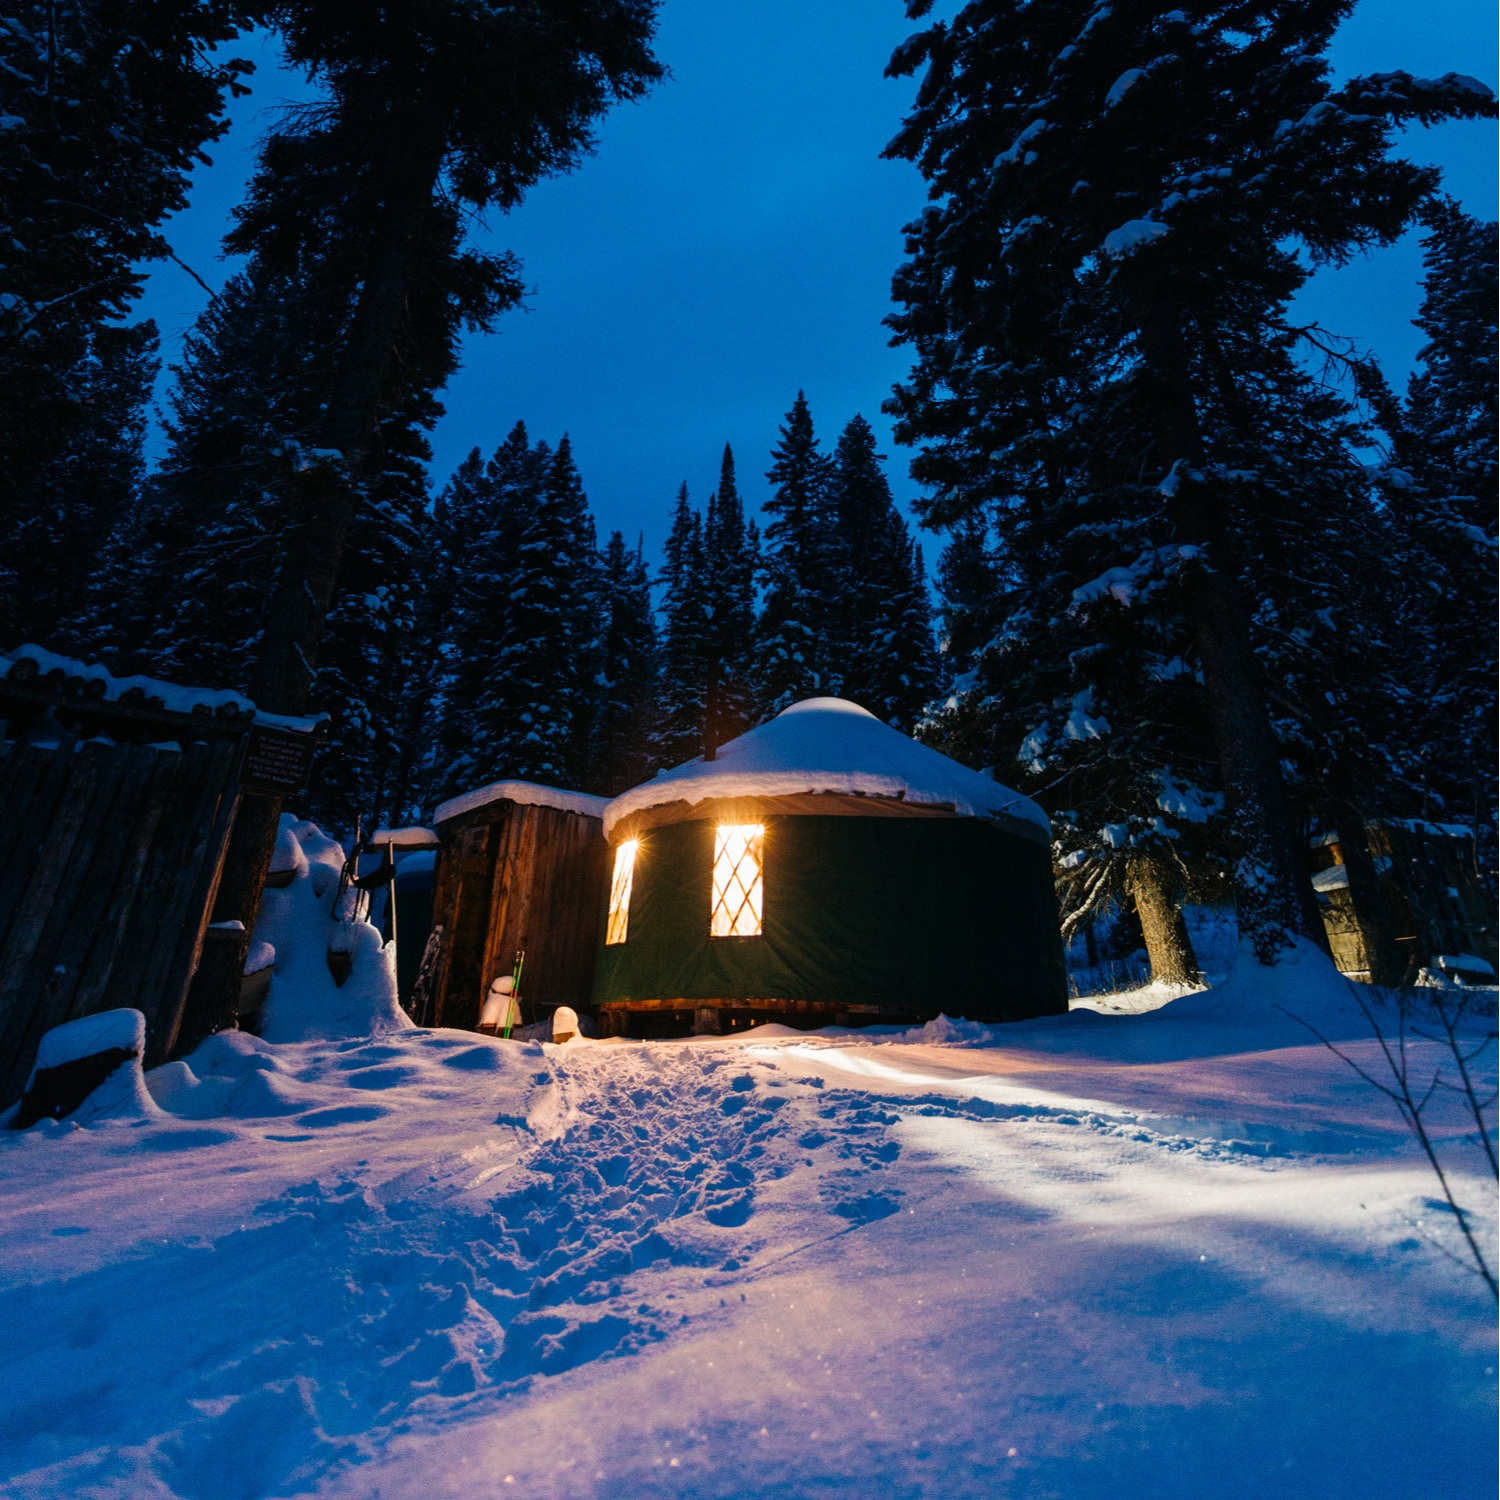 Yurts Huts Sun Valley Guides Nov operations in turkestan picture by commercial offering. yurts huts sun valley guides